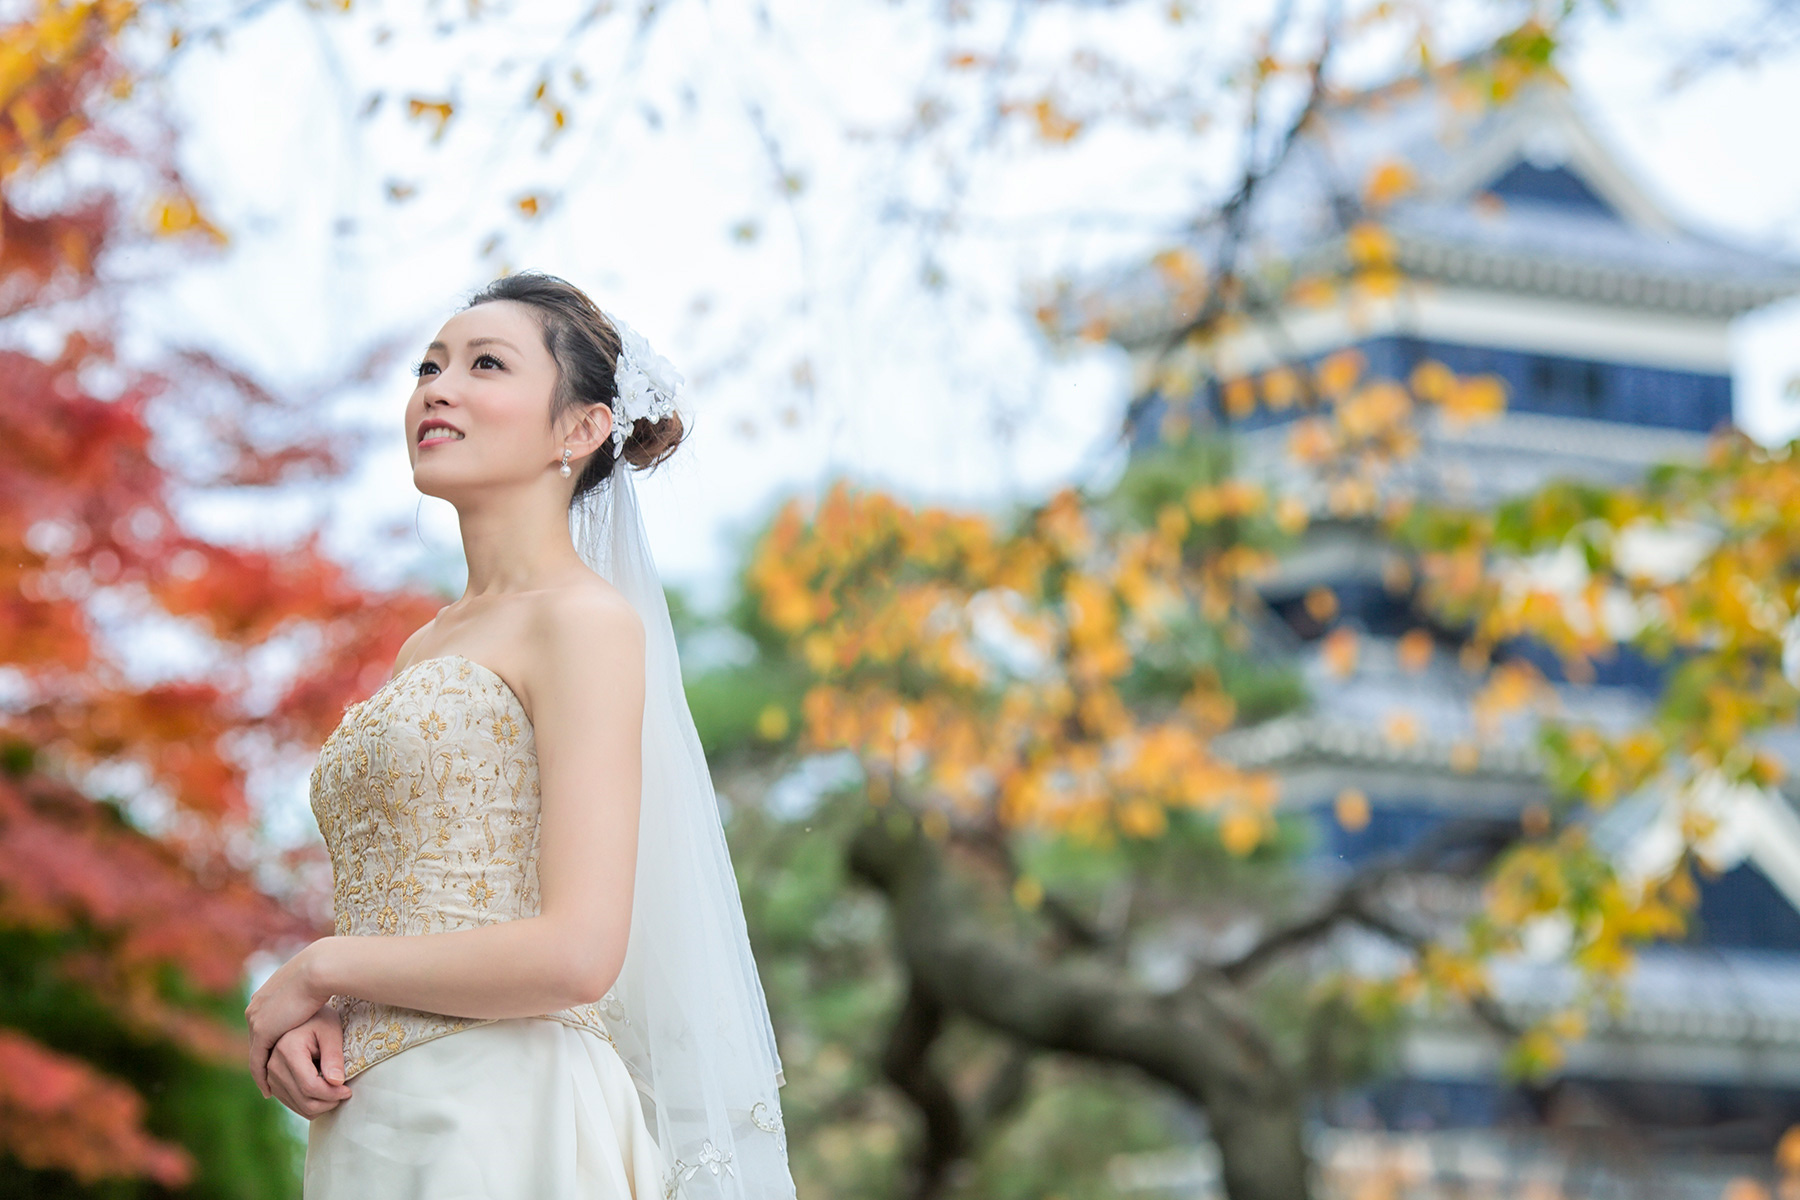 The Solo Wedding Trend In Japan!